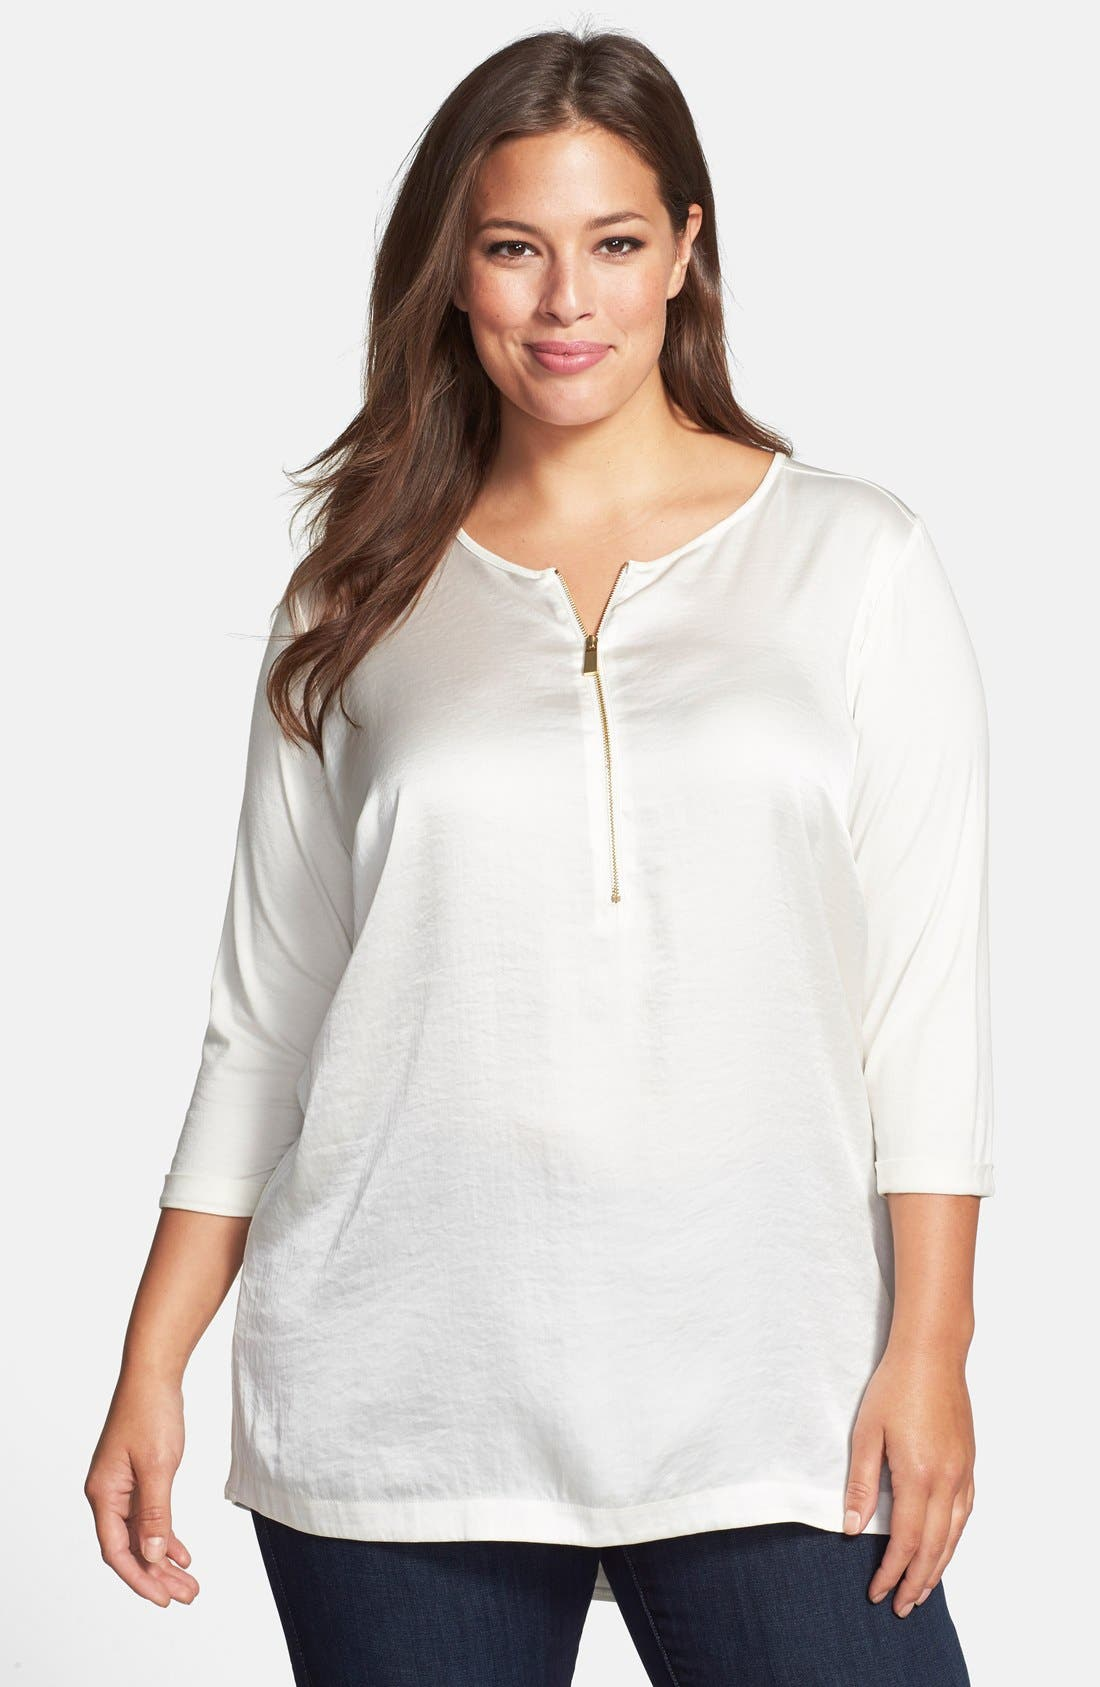 Alternate Image 1 Selected - Vince Camuto Zip Placket Mixed Media Tunic Top (Plus Size)